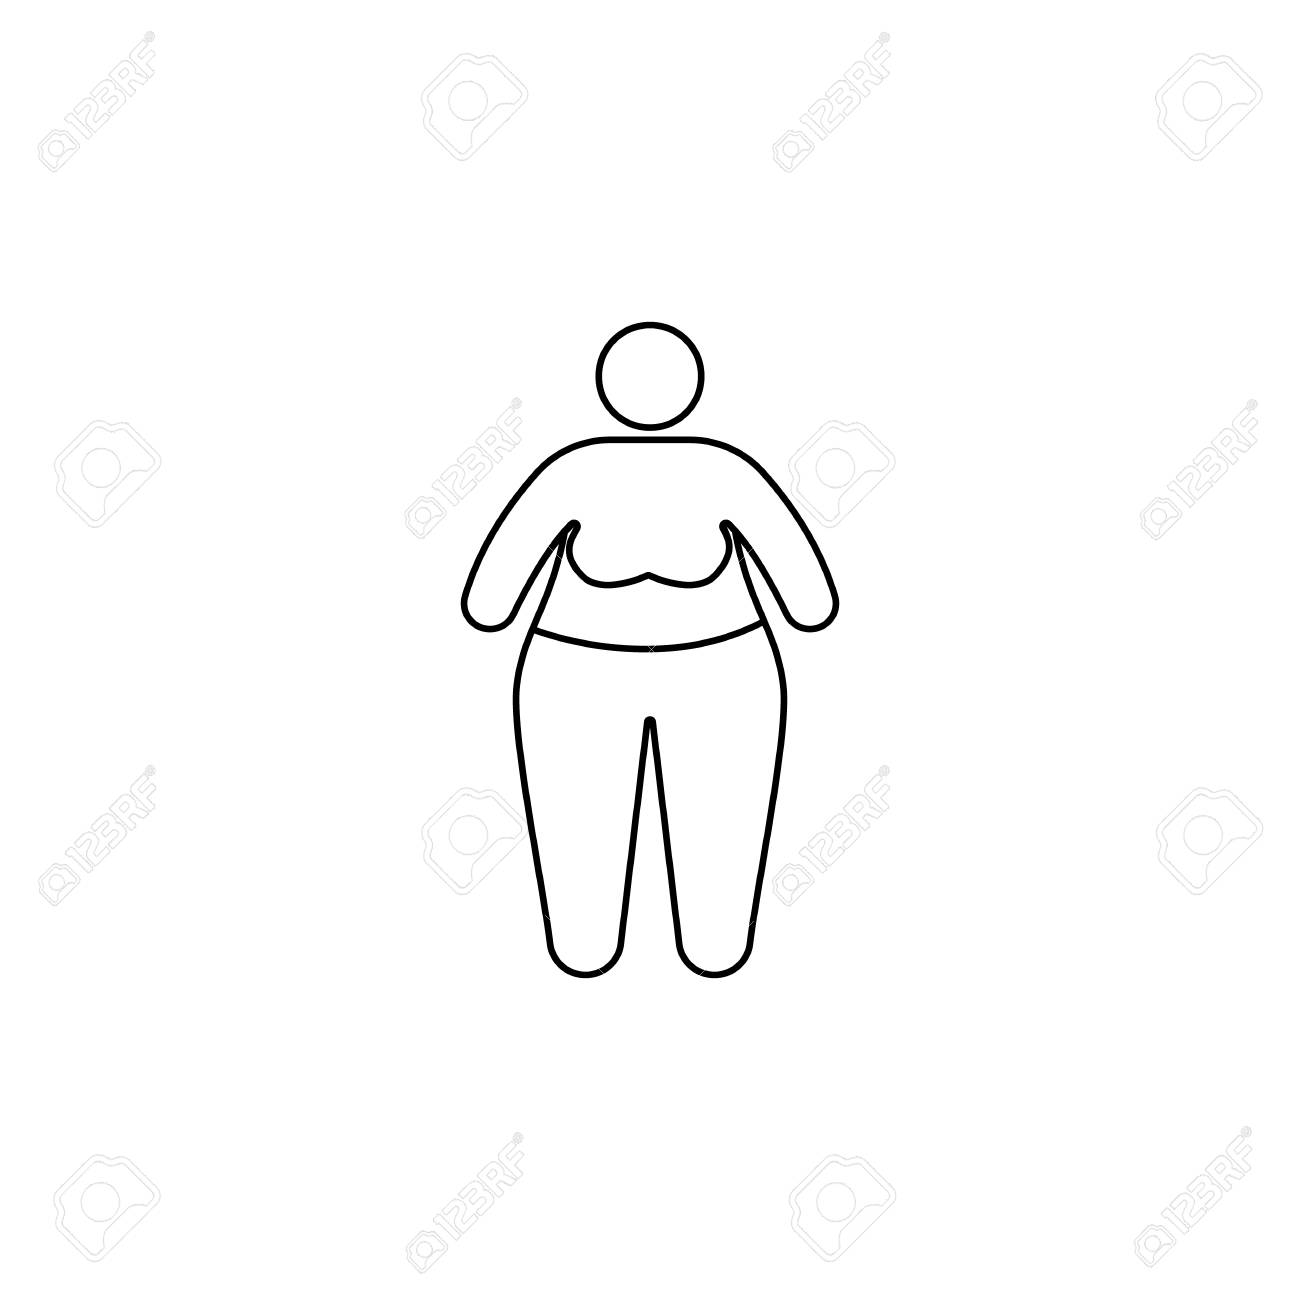 Obesity problems icon  Element of fast food for mobile concept